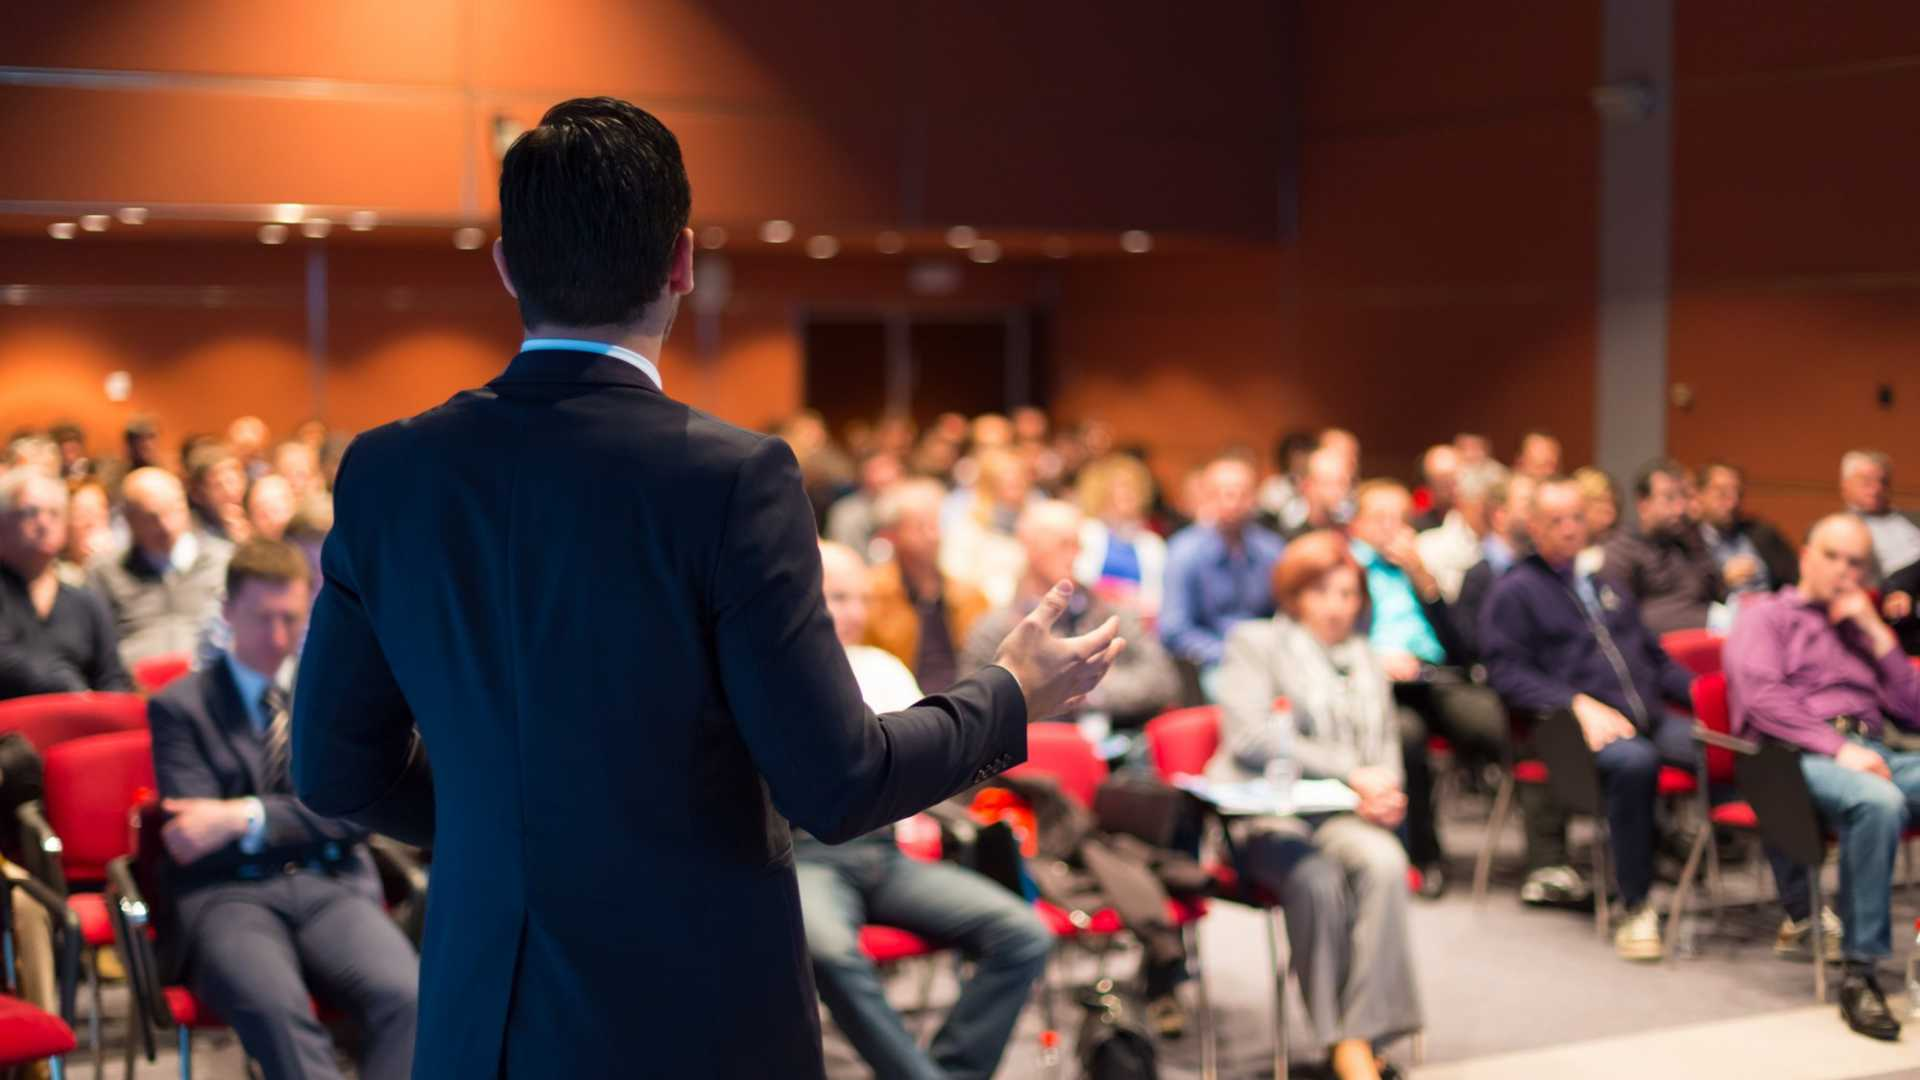 The Key to Being an Effective Public Speaker